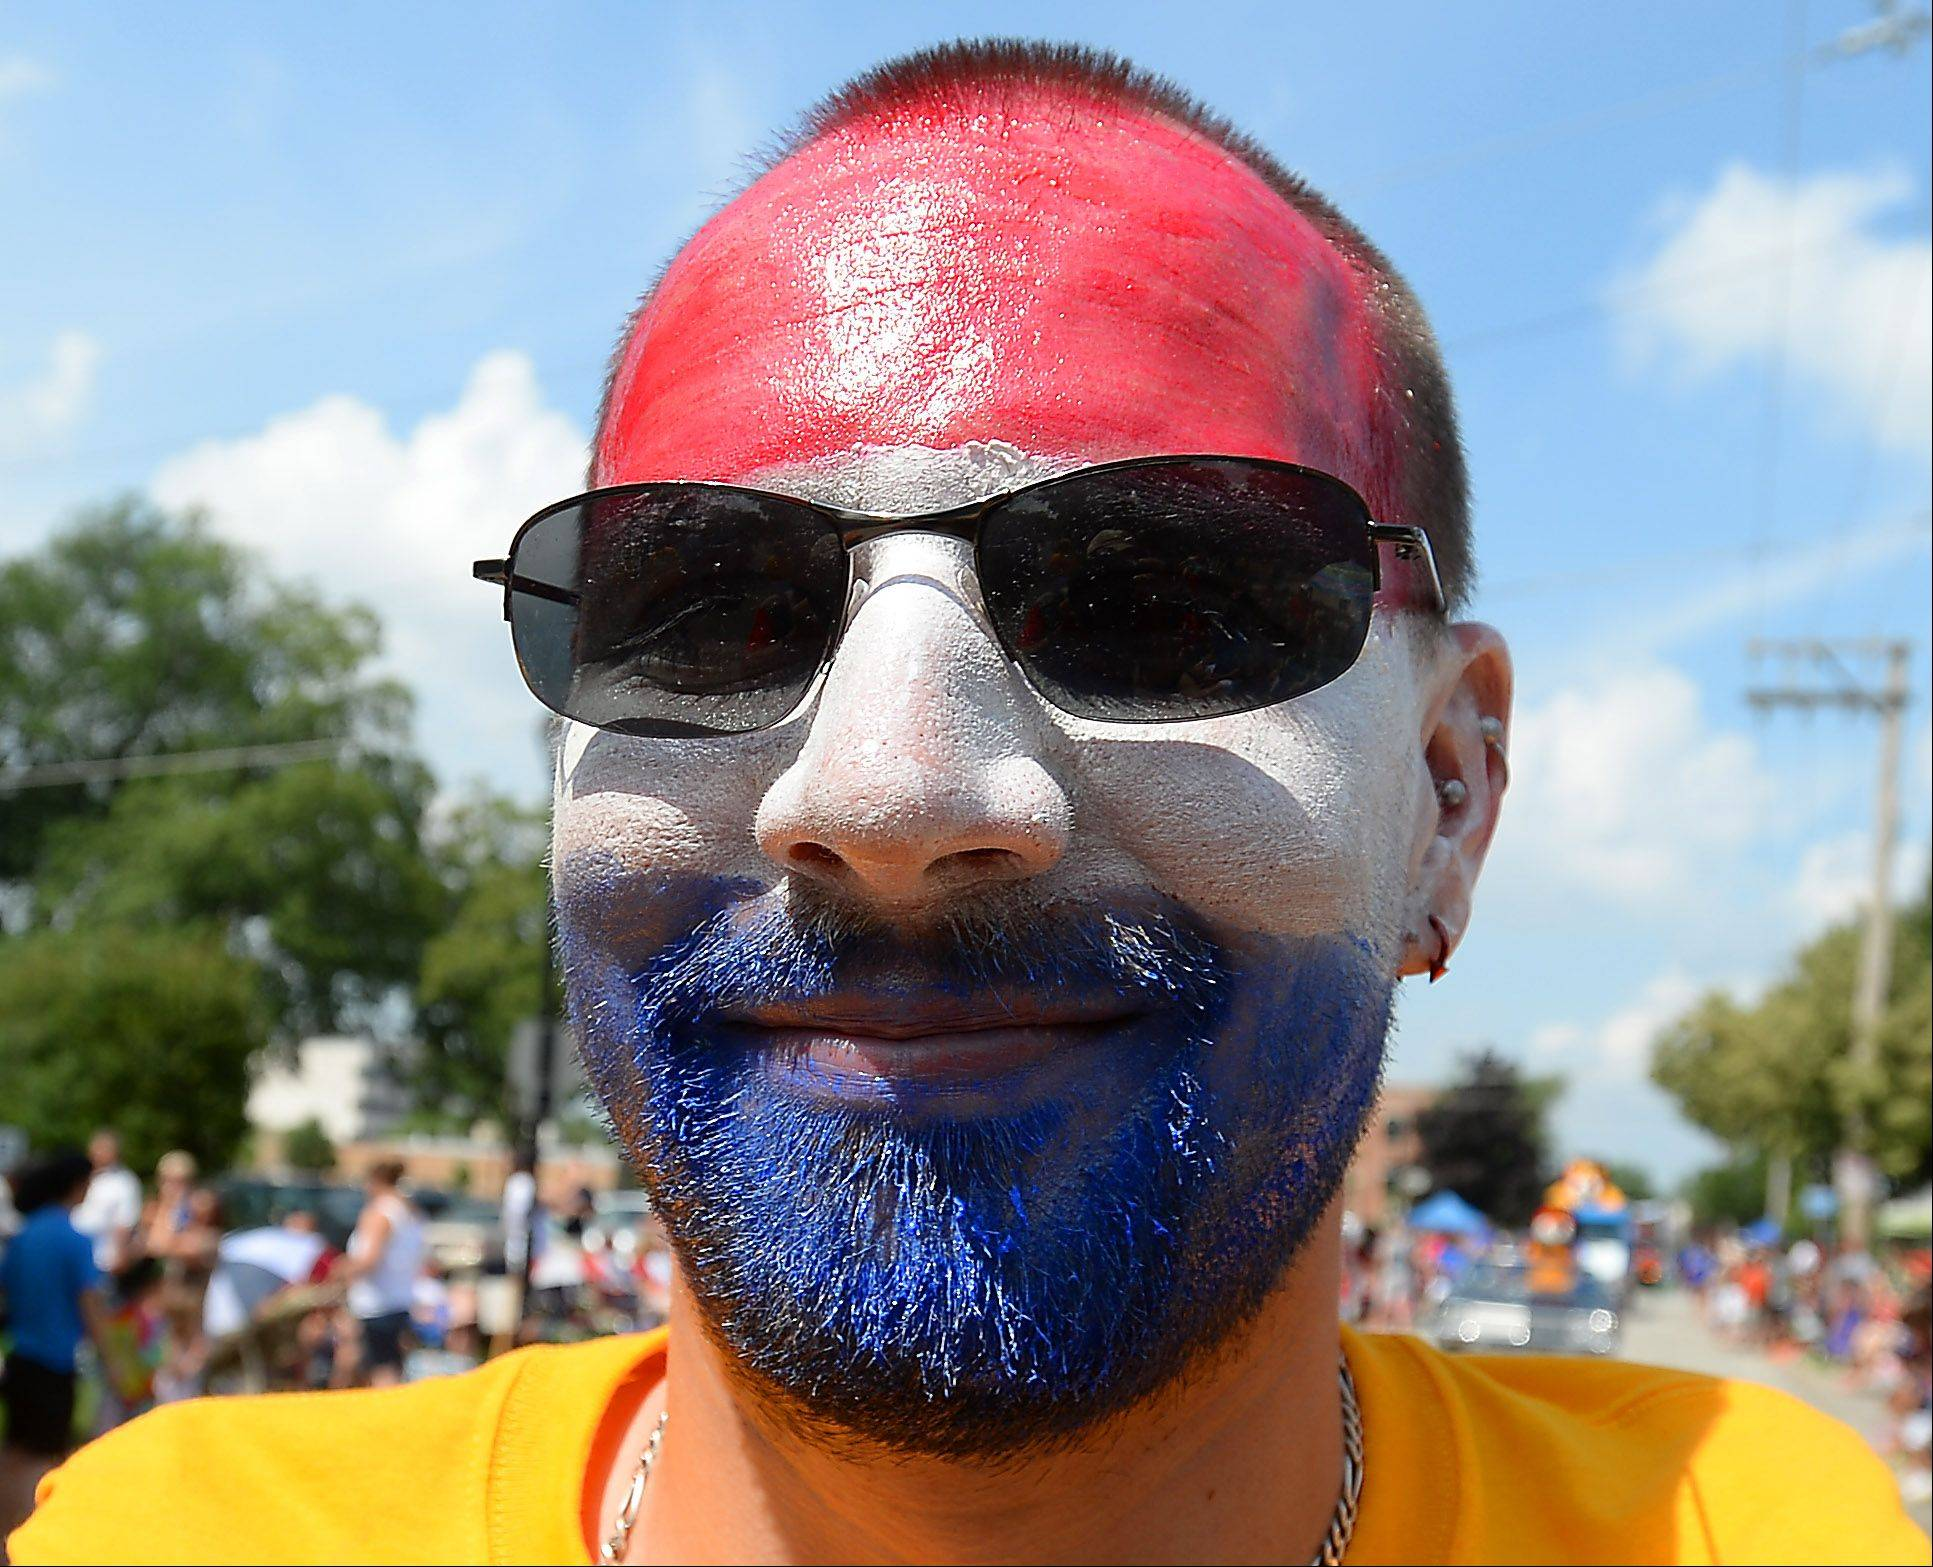 Joe Cole of Palatine sports America's colors during the Palatine Fourth of July parade on Saturday.